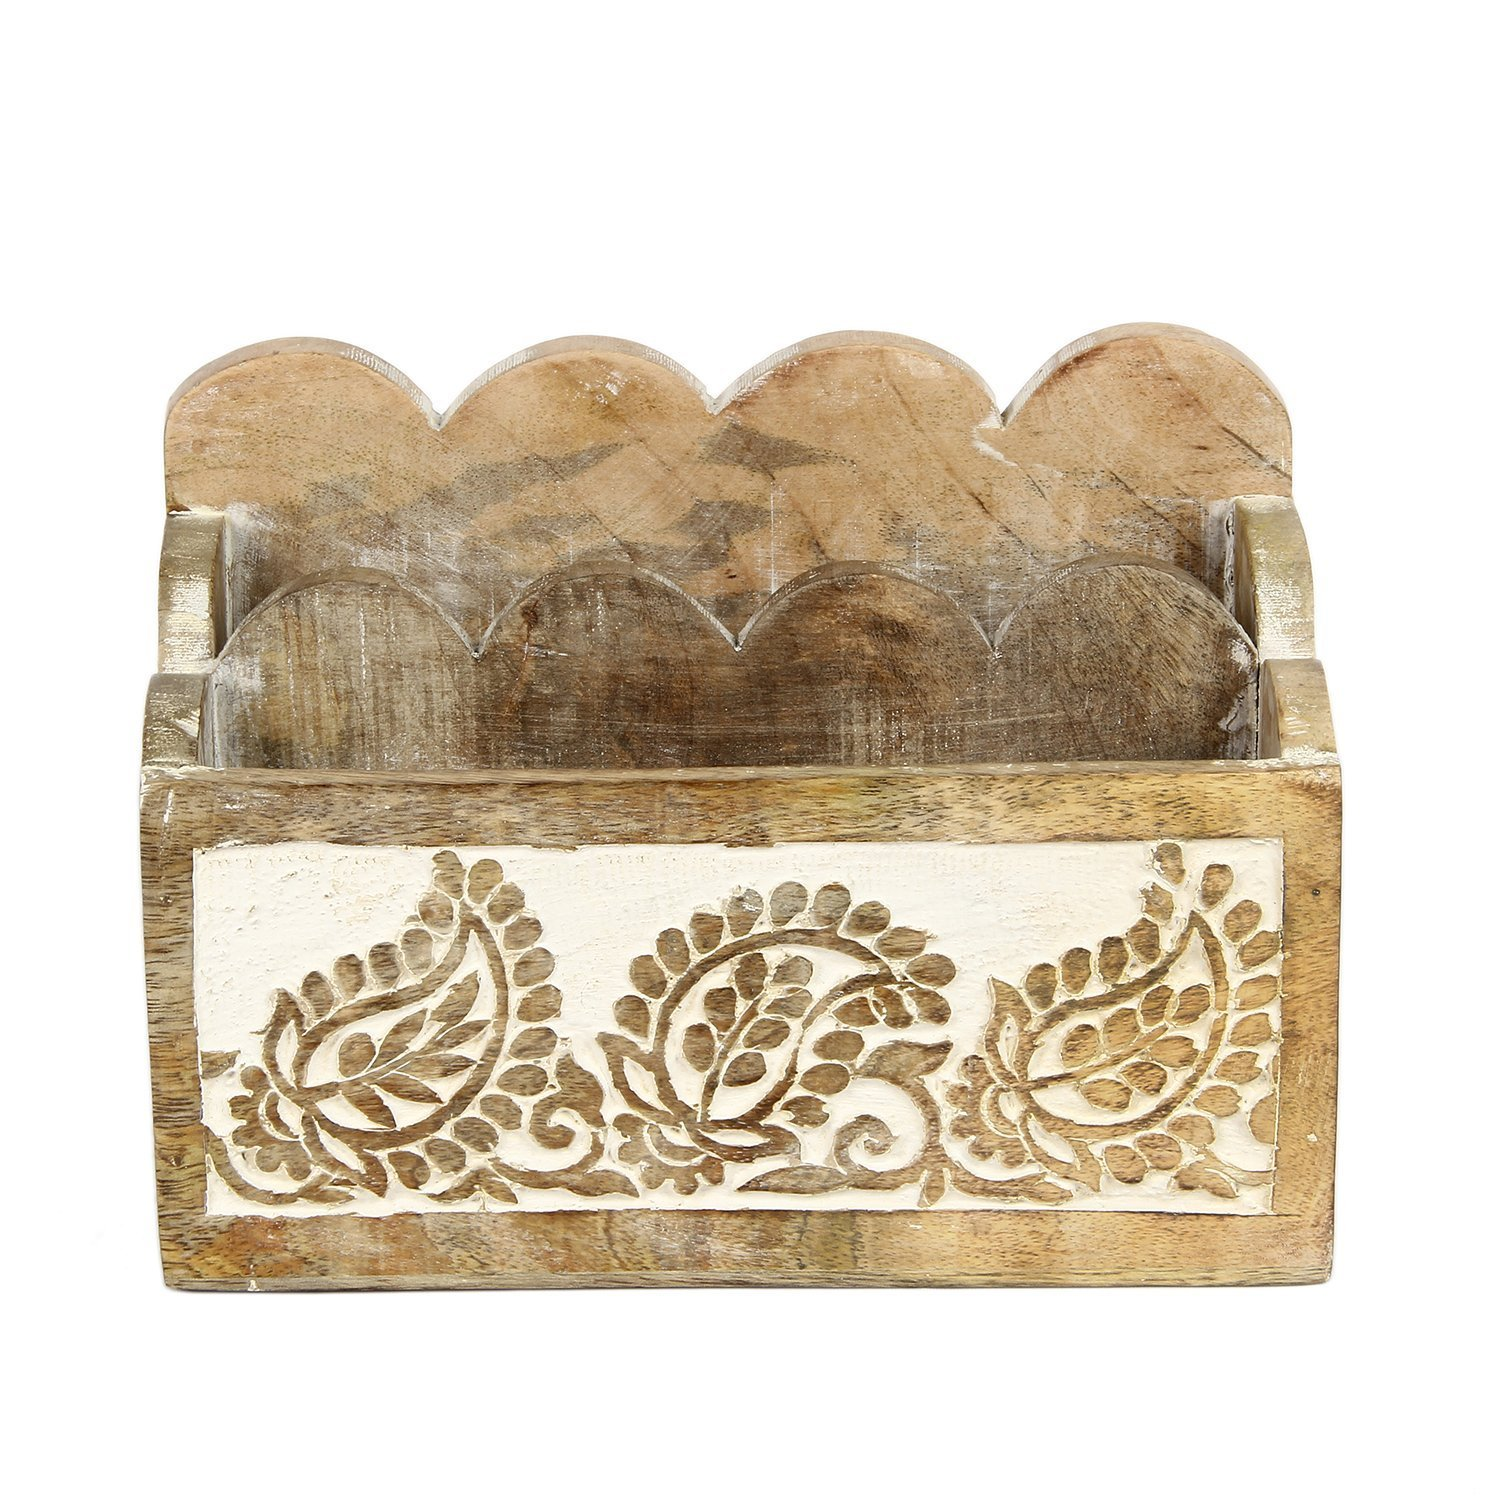 Design1 Icrafts India Wooden Desktop Letter Rack Mobile Display Stand Holder Organizer with 2 Sections Handmade|